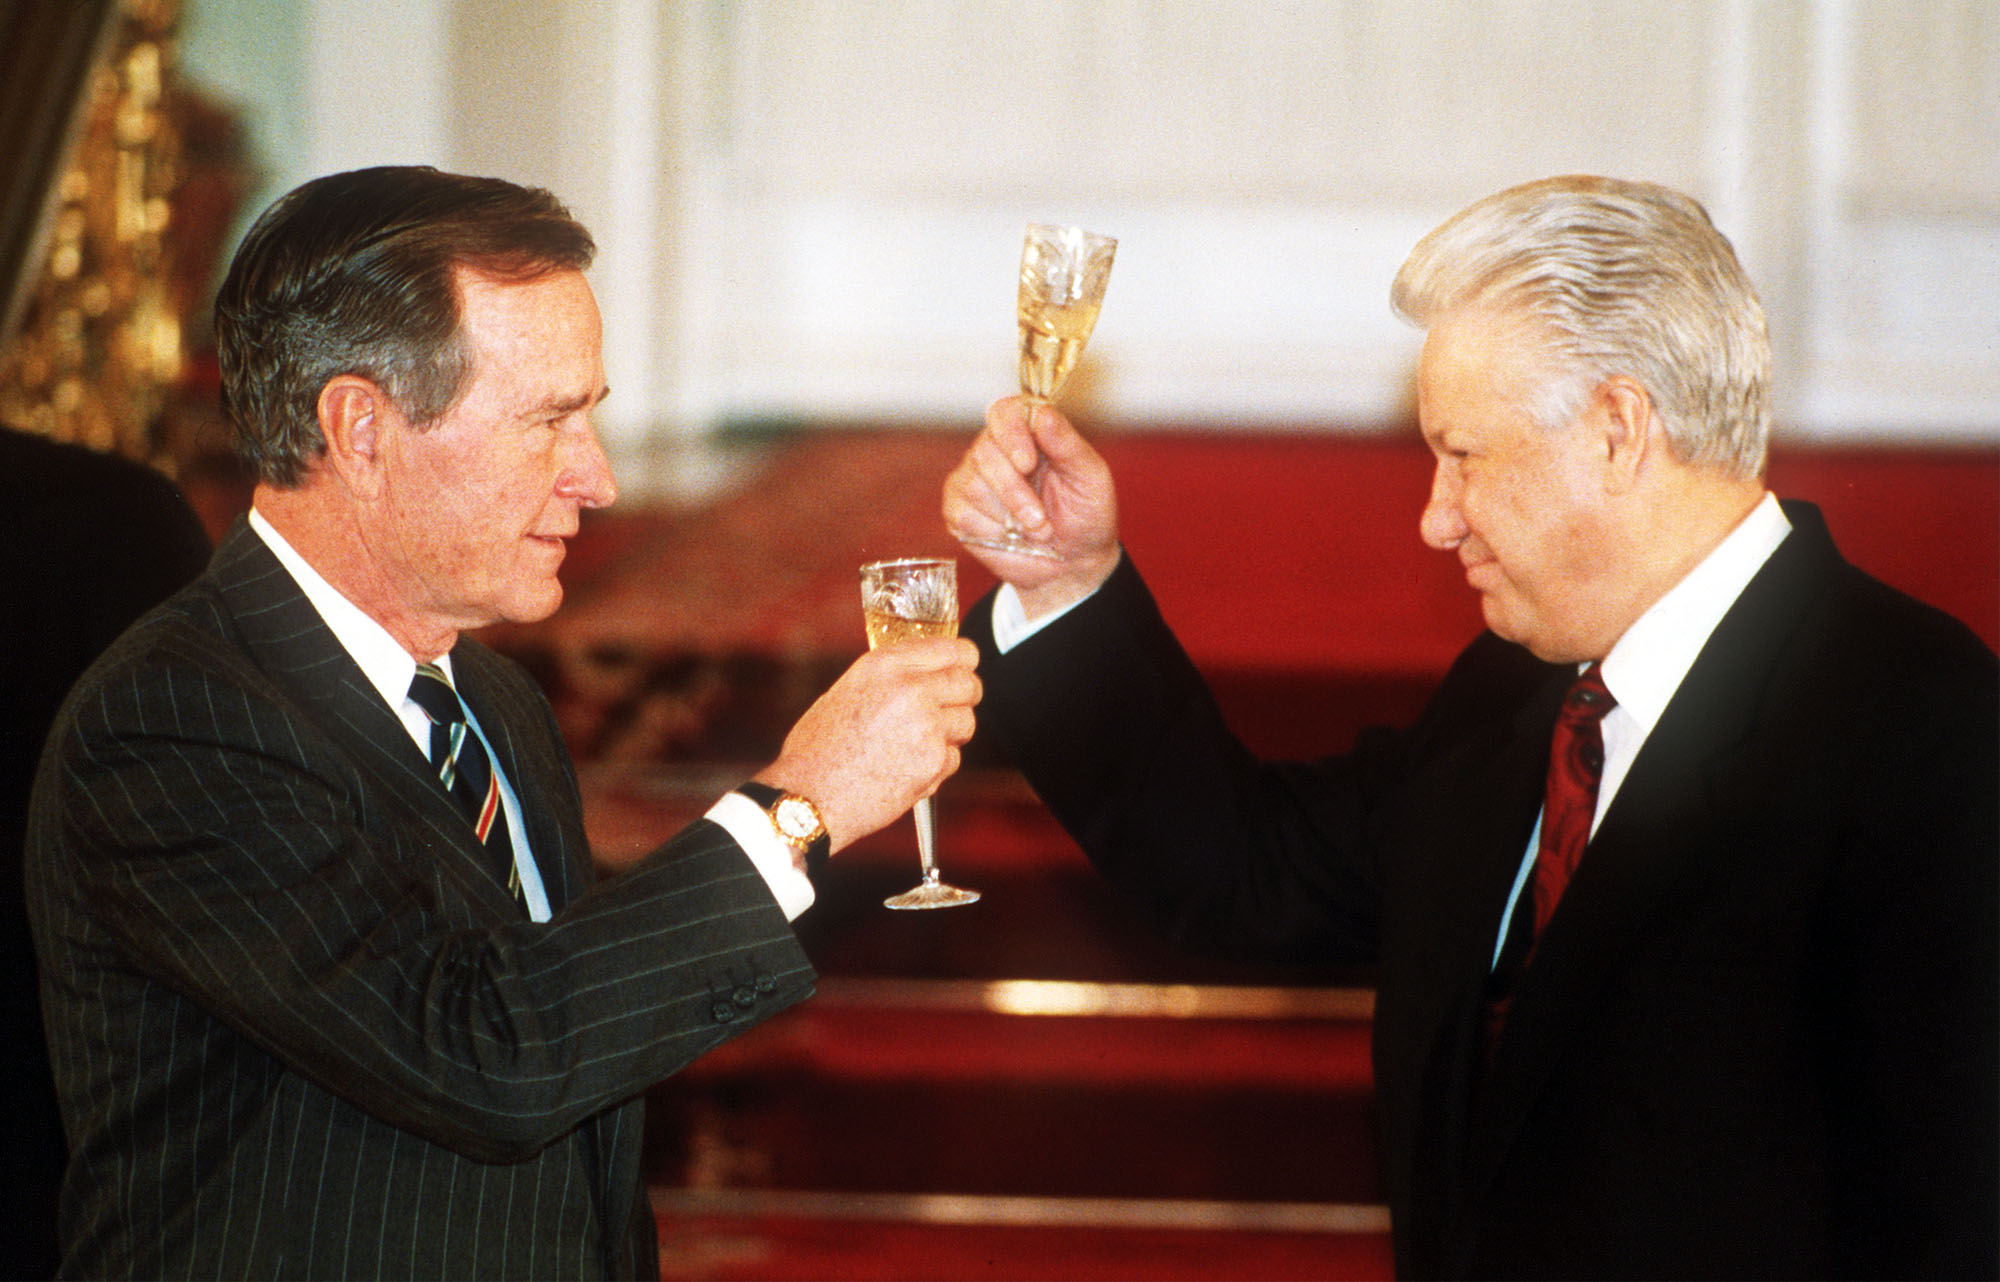 This January 3, 1993 photo shows then Russian President Boris Yeltsin toasting with then U. S. President George H. W. Bush after they signed the START II treaty in Moscow.